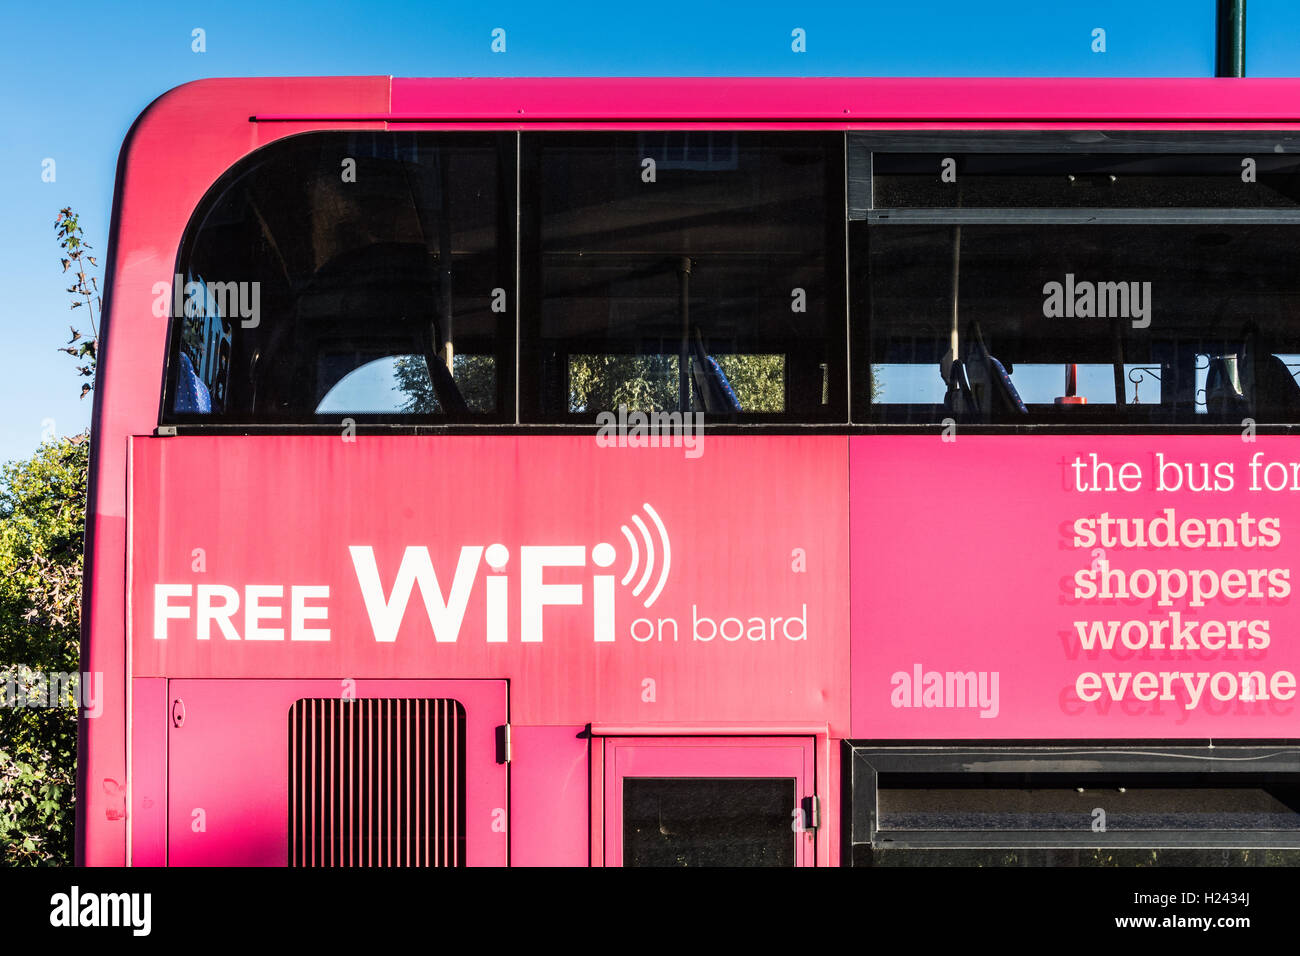 Free WiFi on board pink double decker bus - Stock Image